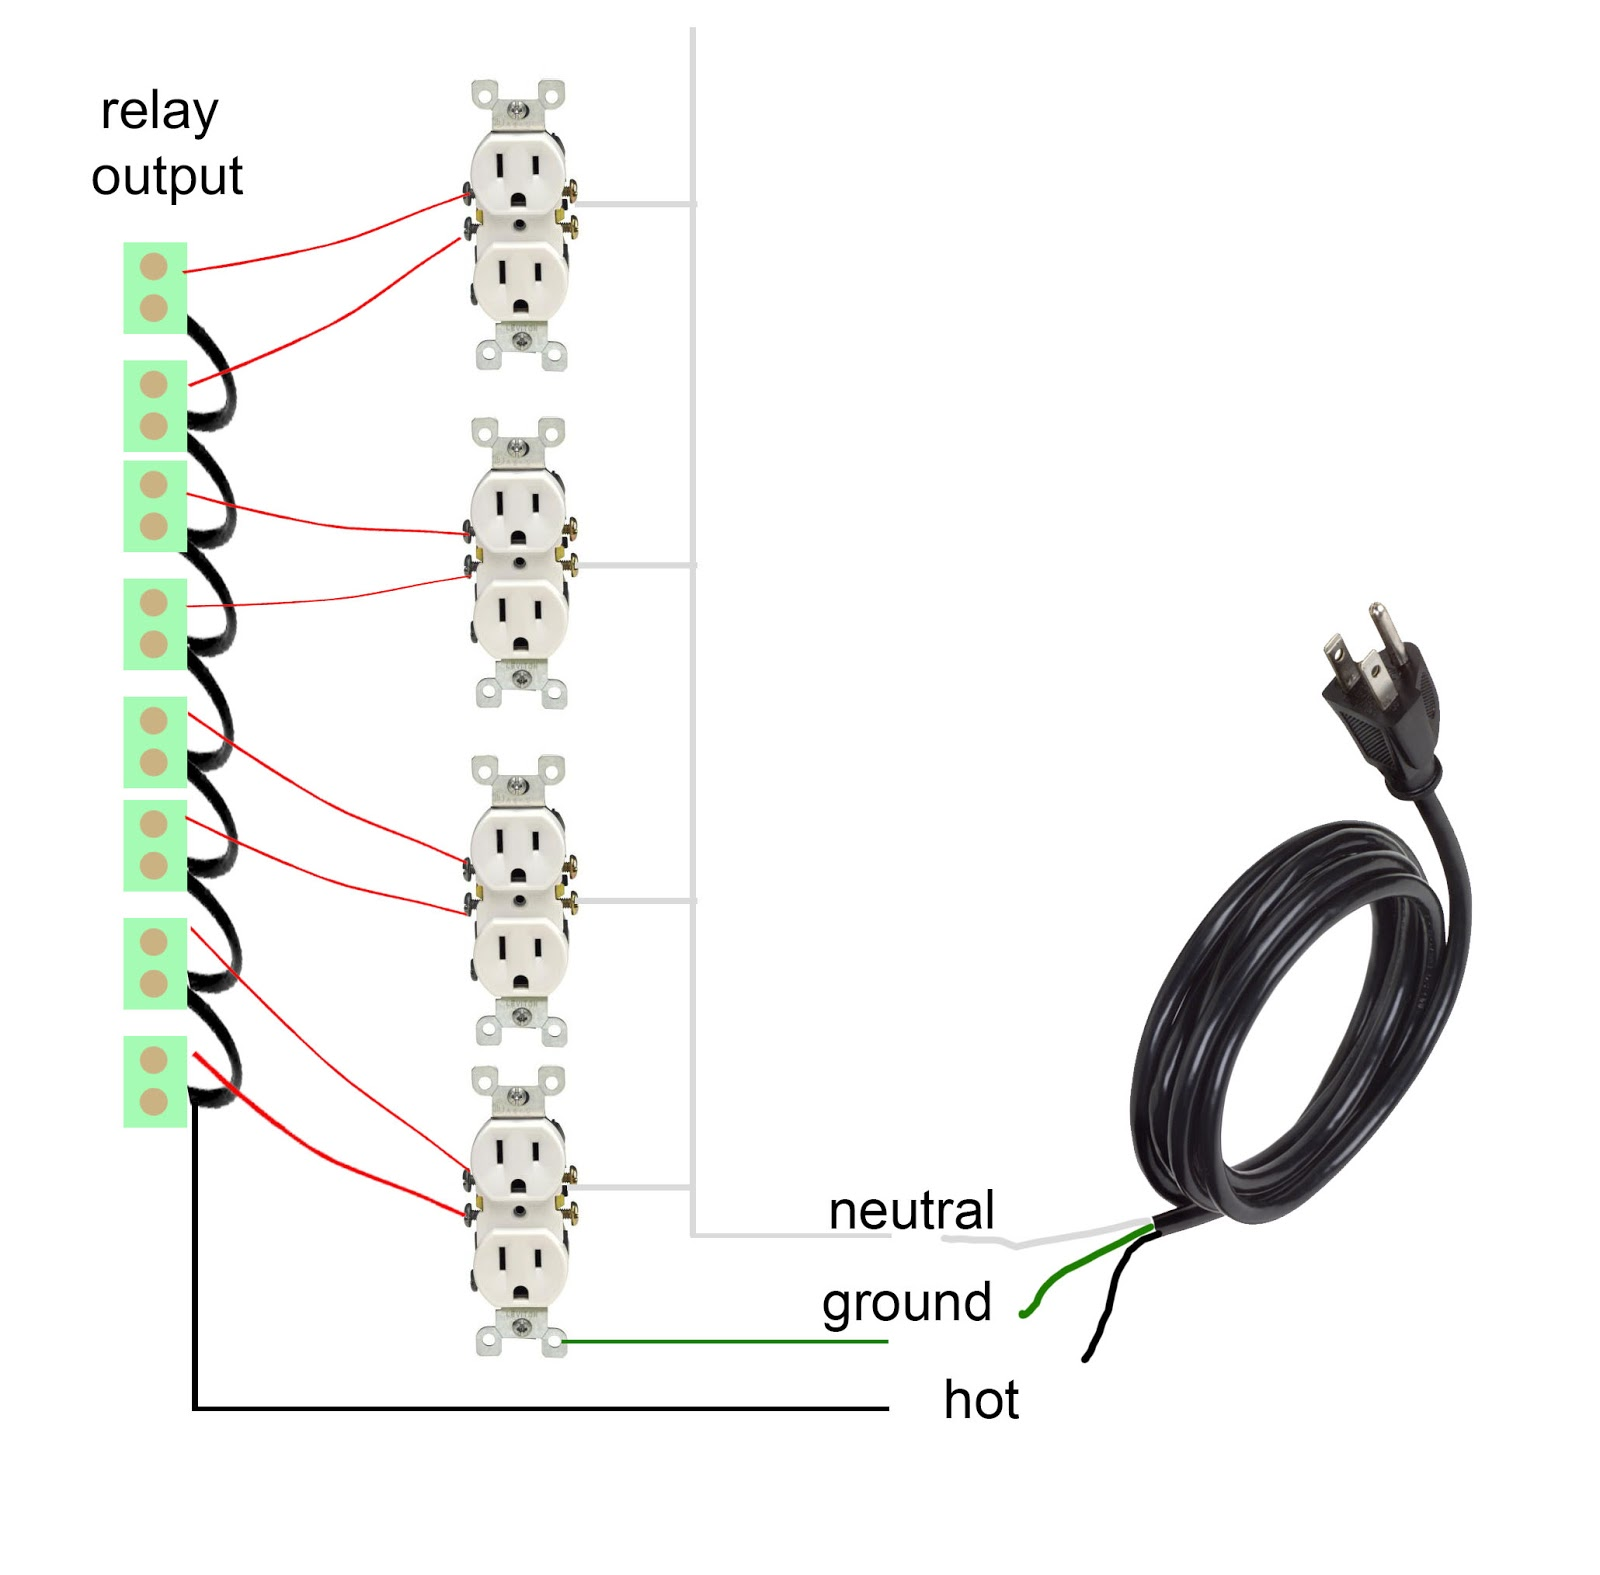 Led Christmas Light Circuit Diagram Together With Cat 5 Cable Wiring